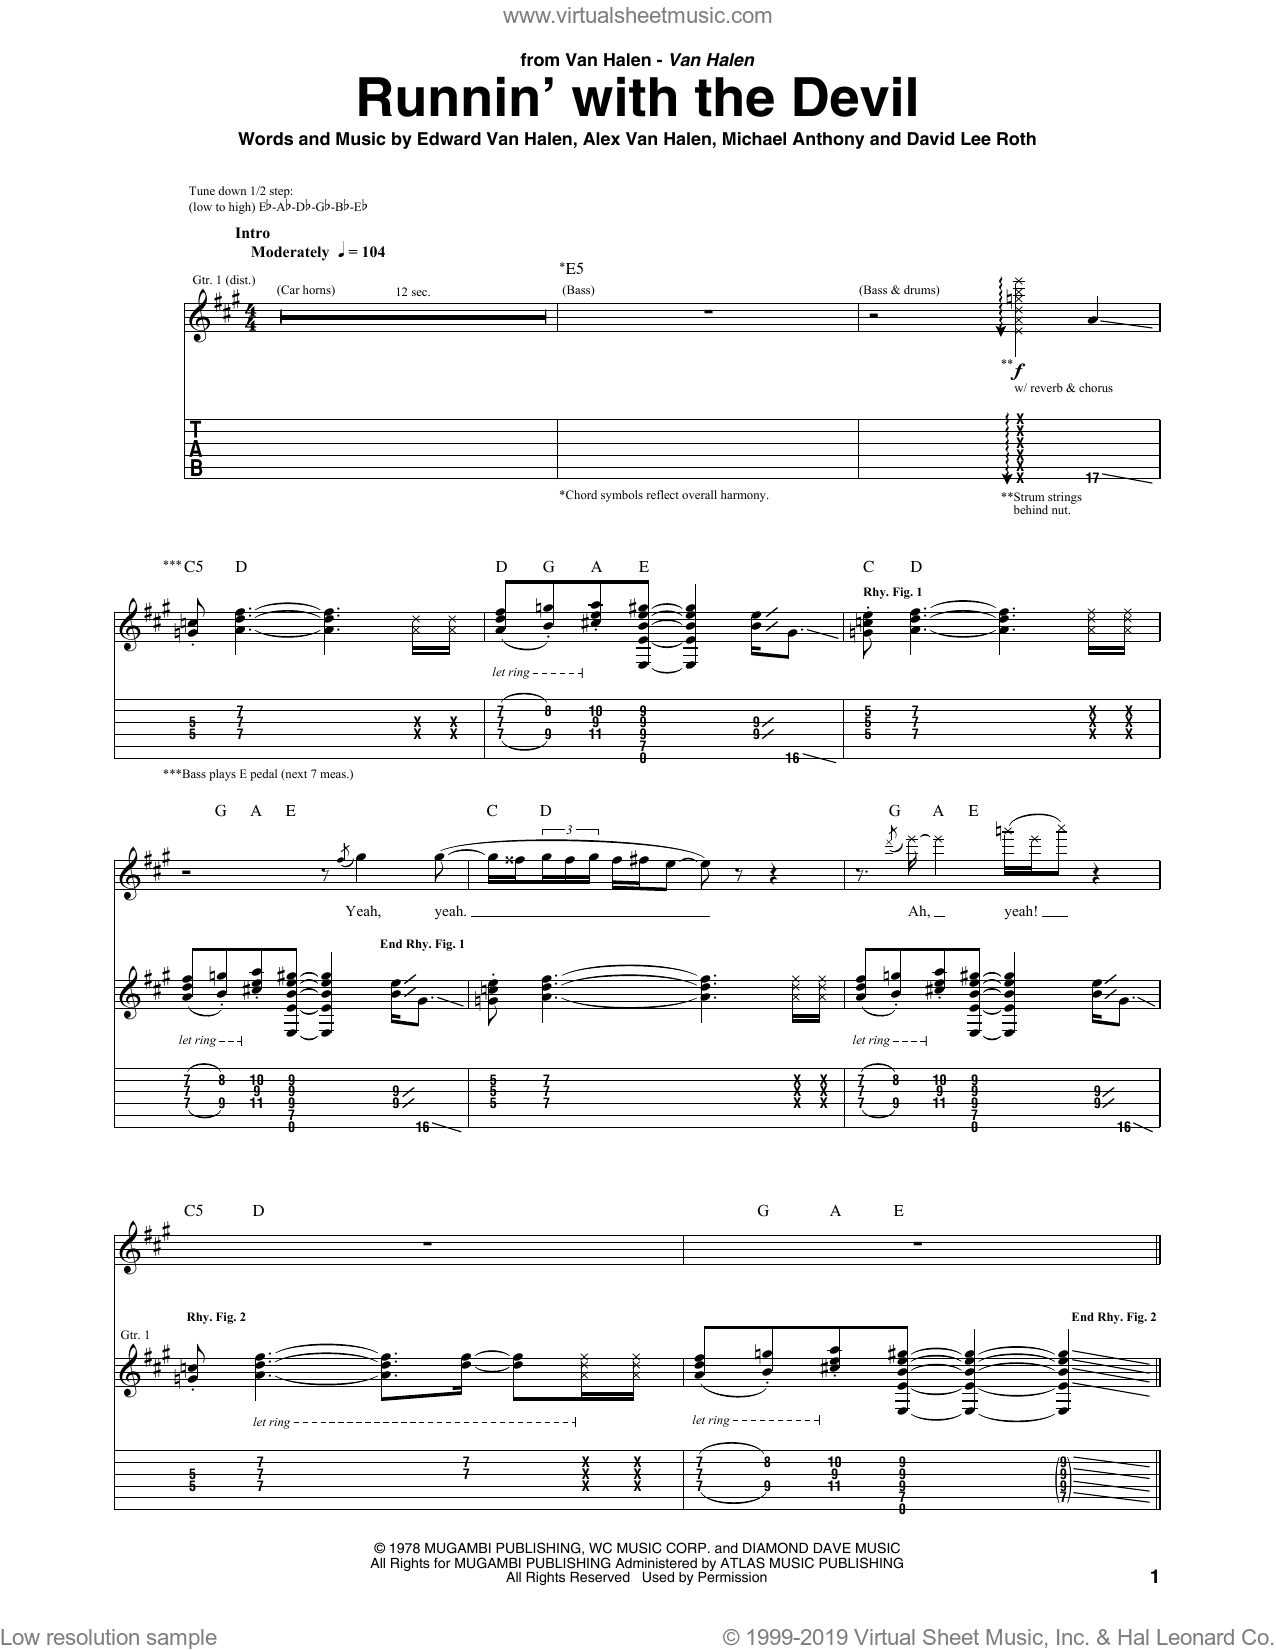 Runnin' With The Devil sheet music for guitar (tablature) by Edward Van Halen, Alex Van Halen, David Lee Roth and Michael Anthony. Score Image Preview.